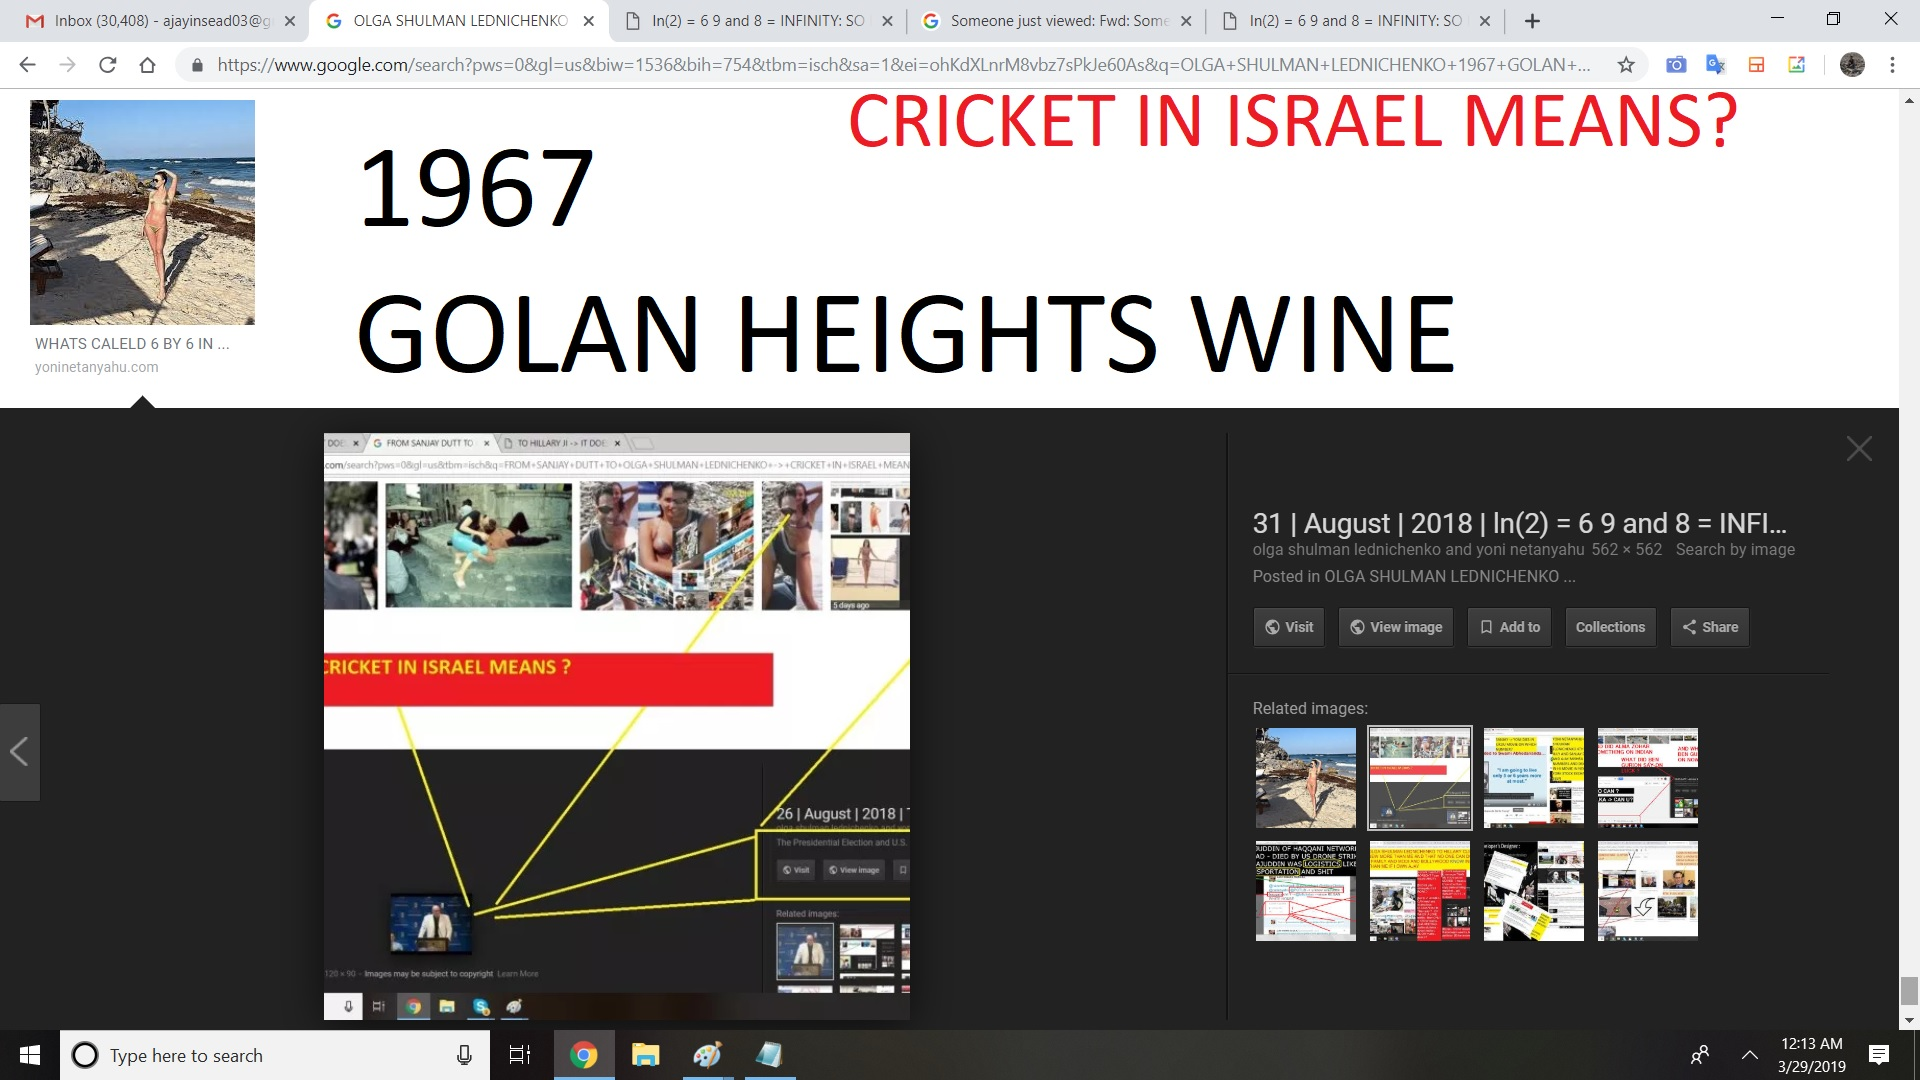 1967 GOLAN HEIGHT WINE